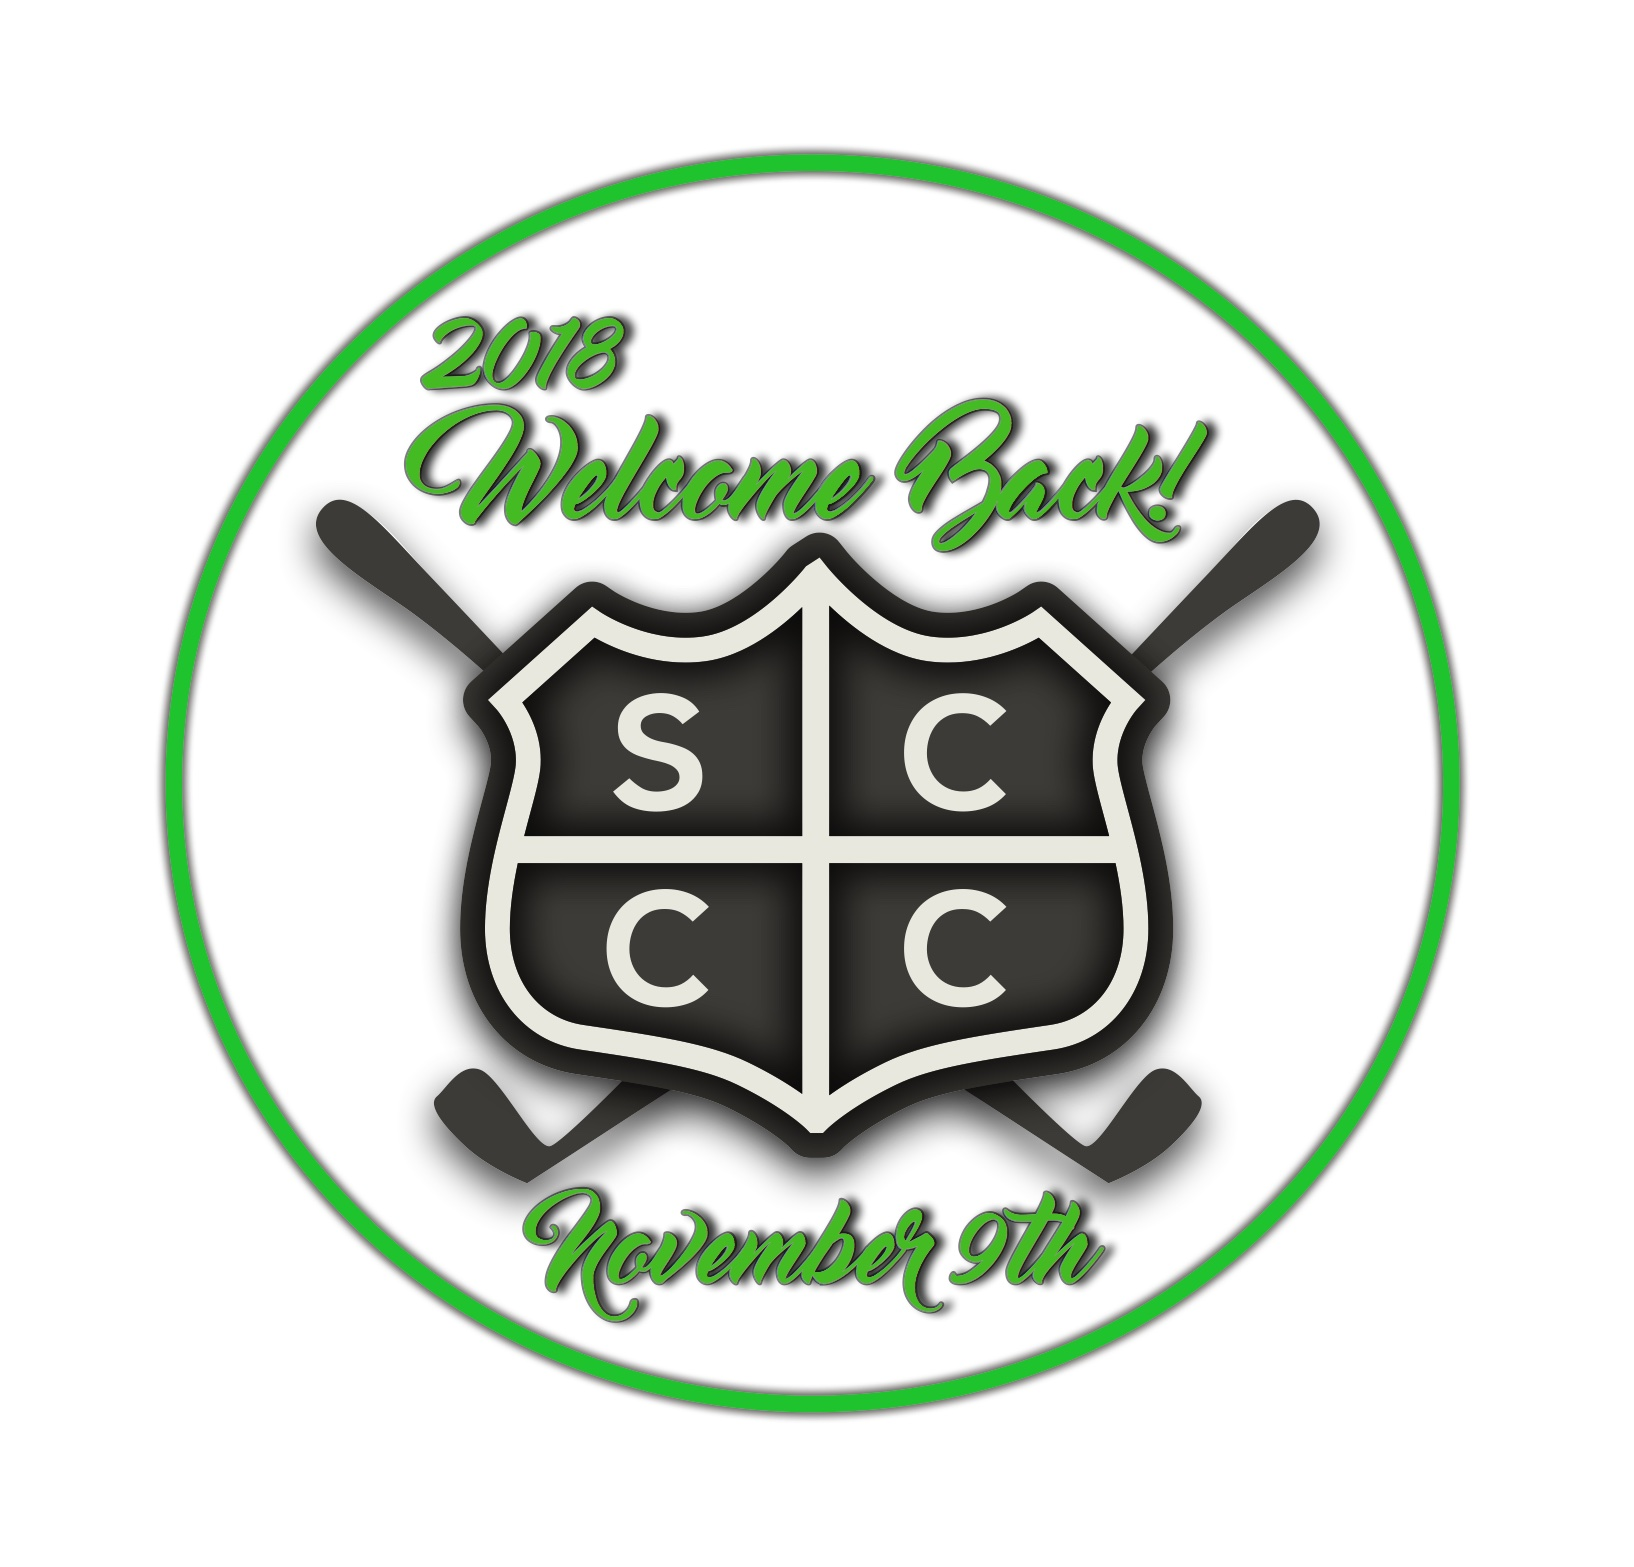 2018 SCCC Welcome Back Logo